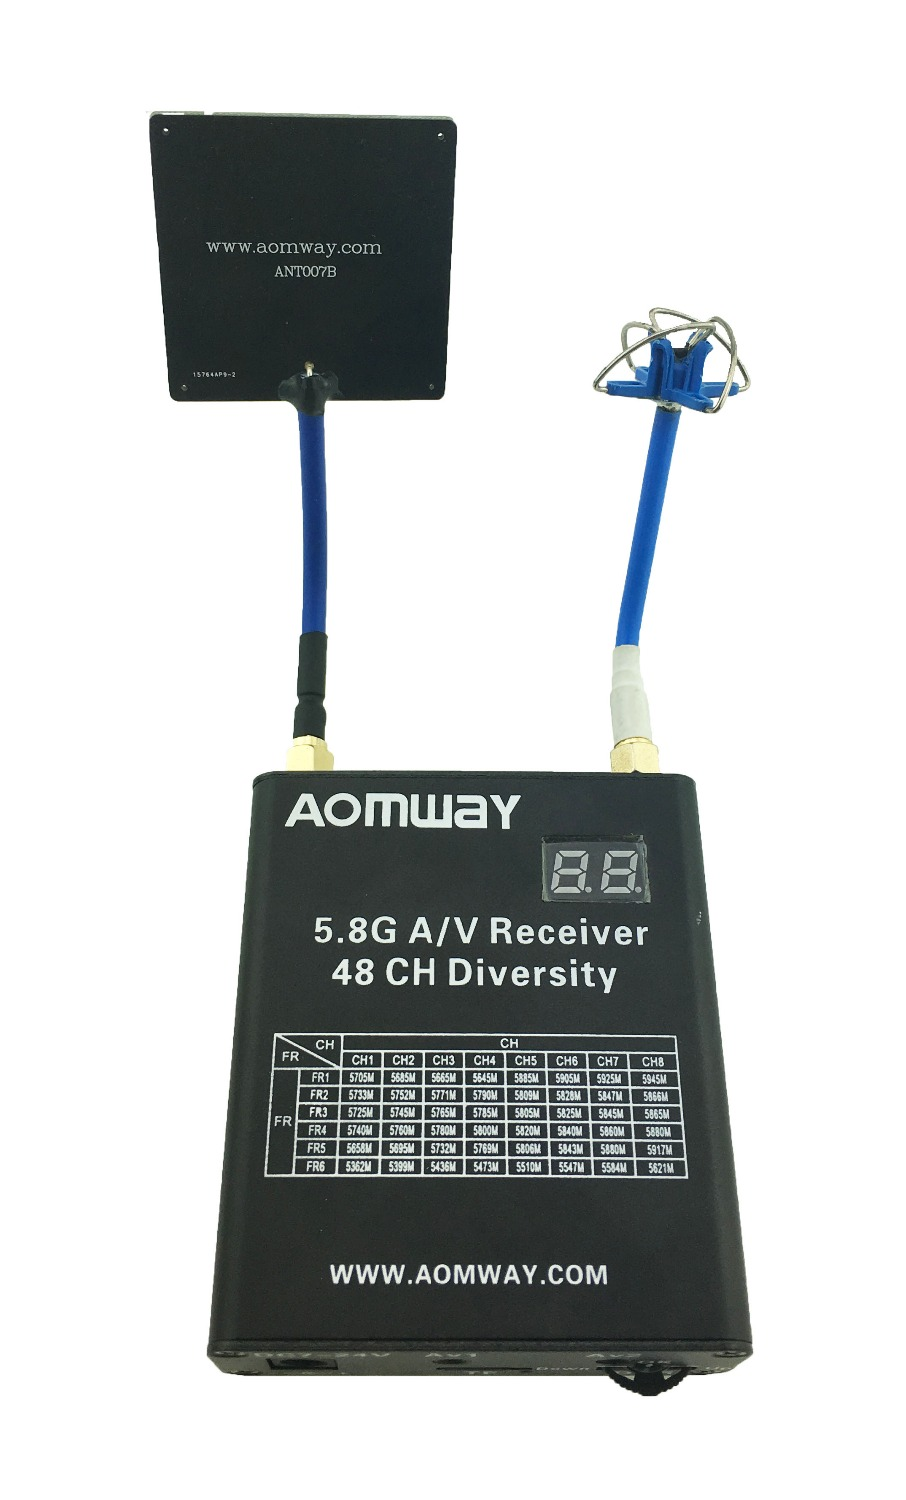 Aomway 5.8G 48CH Audio Video AV 5.8G Dual Receiver DVR Diversity Double RX With 6dbi Antenna Pancel For Multicopter Photography